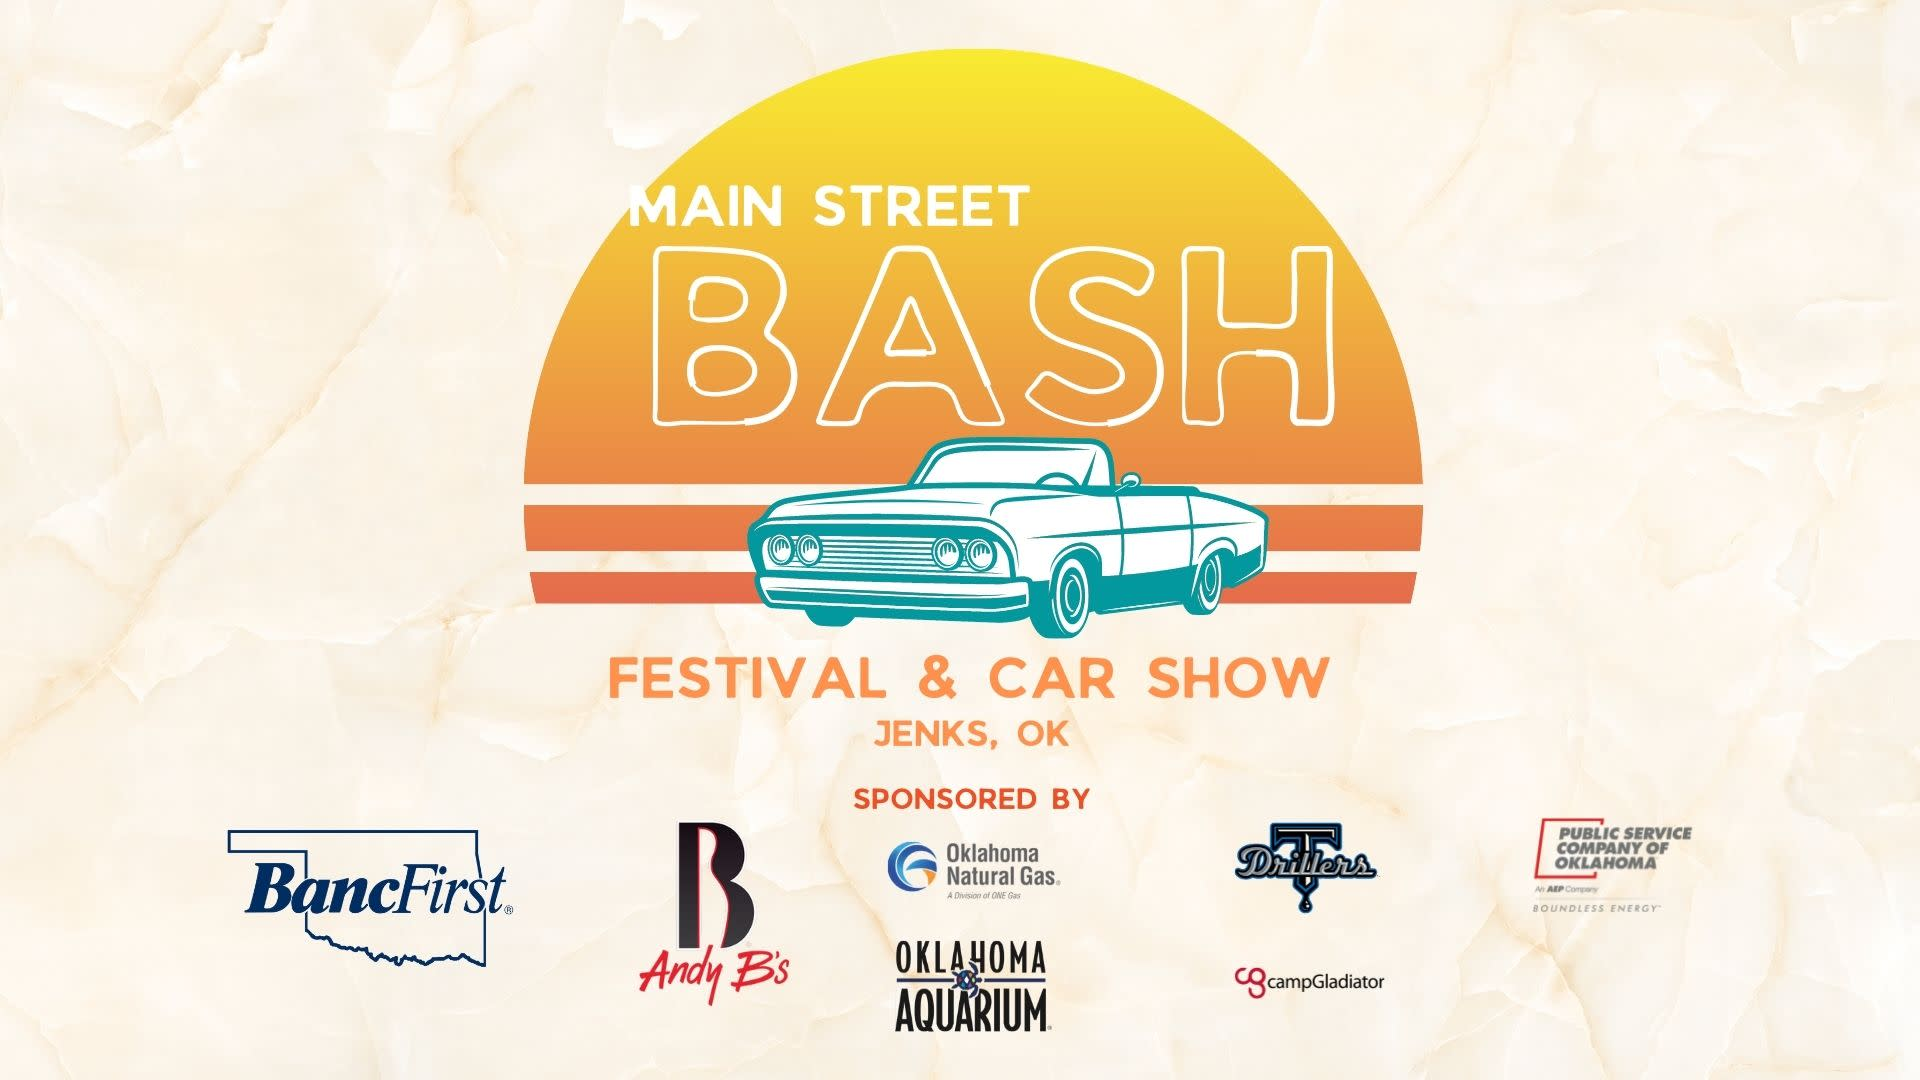 A graphic for the Main Street Bash Festival and Car Show on Sept. 18, 2021.